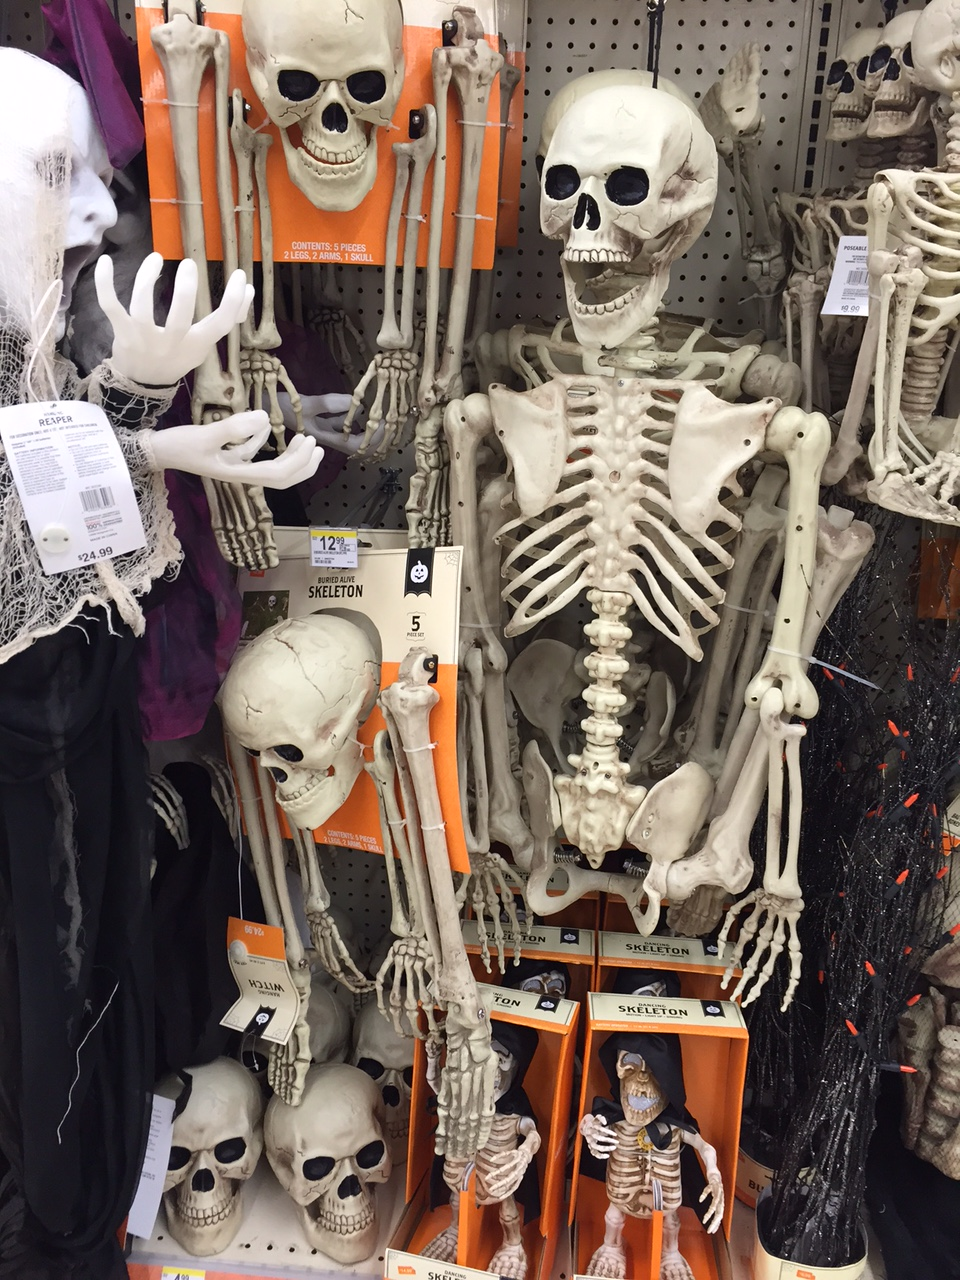 more stuff from walgreens colored skeletons too last 3 images are from a hallmark display there the spooky sounds light ups were neat - Walgreens Halloween Decorations